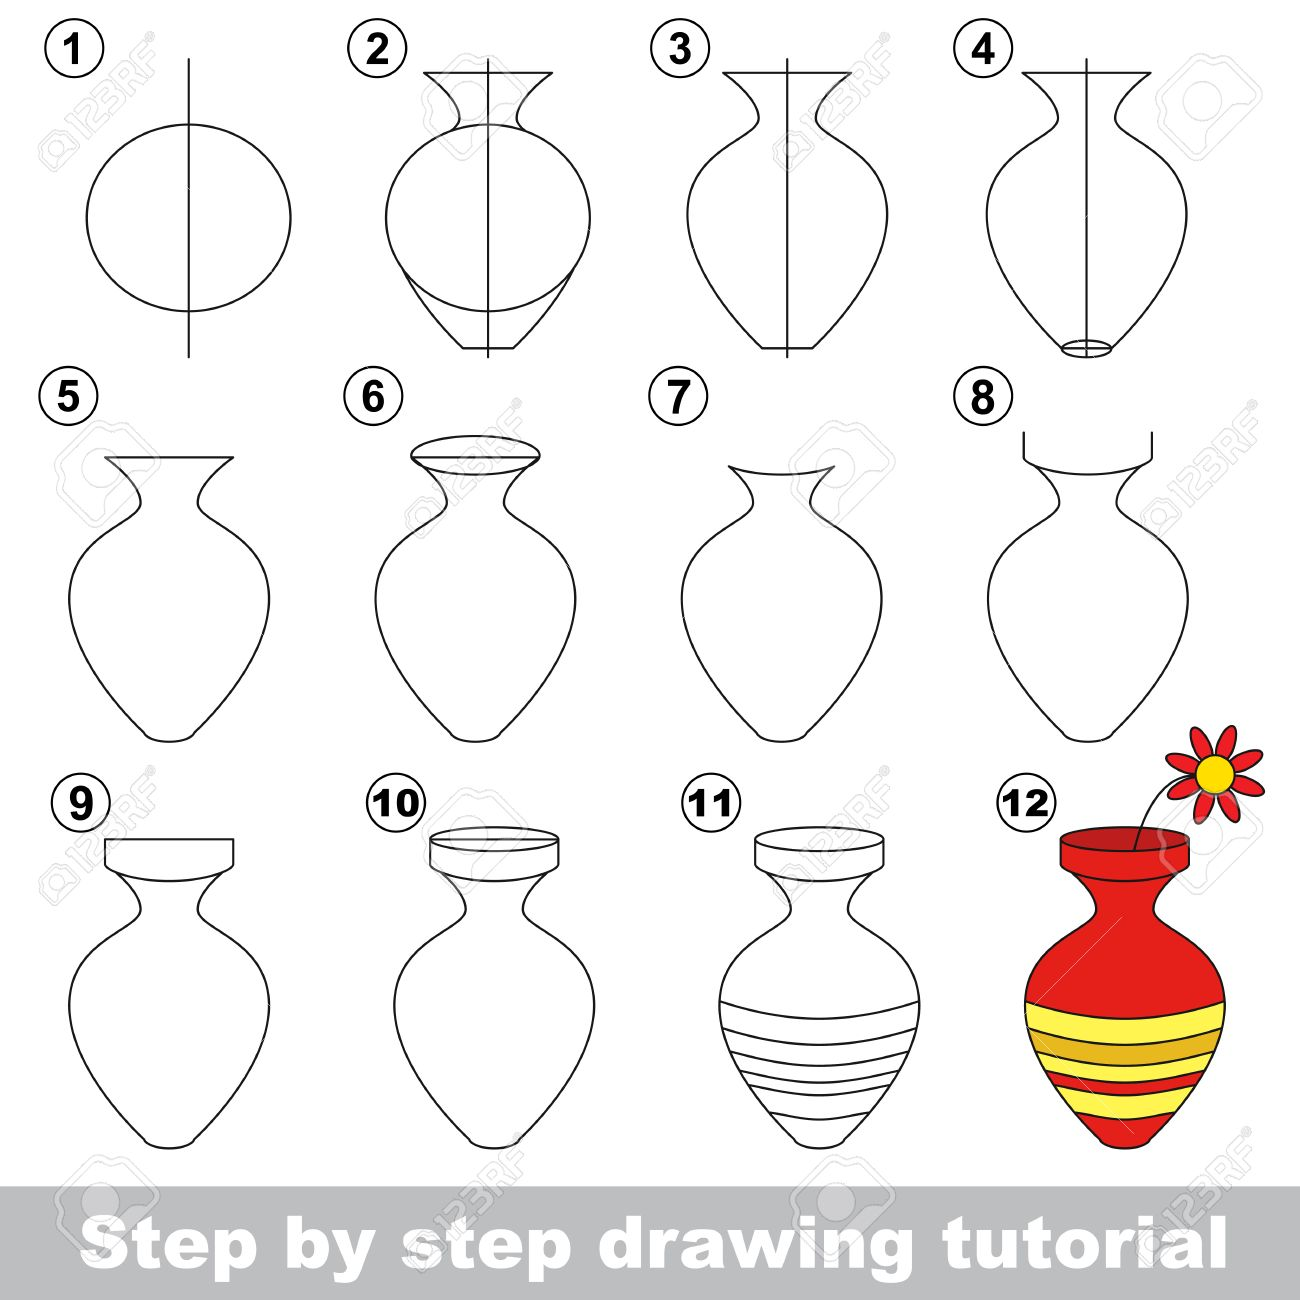 Flower vase how to draw - Drawing Tutorial For Children How To Draw The Vase With Flower Stock Vector 55761343